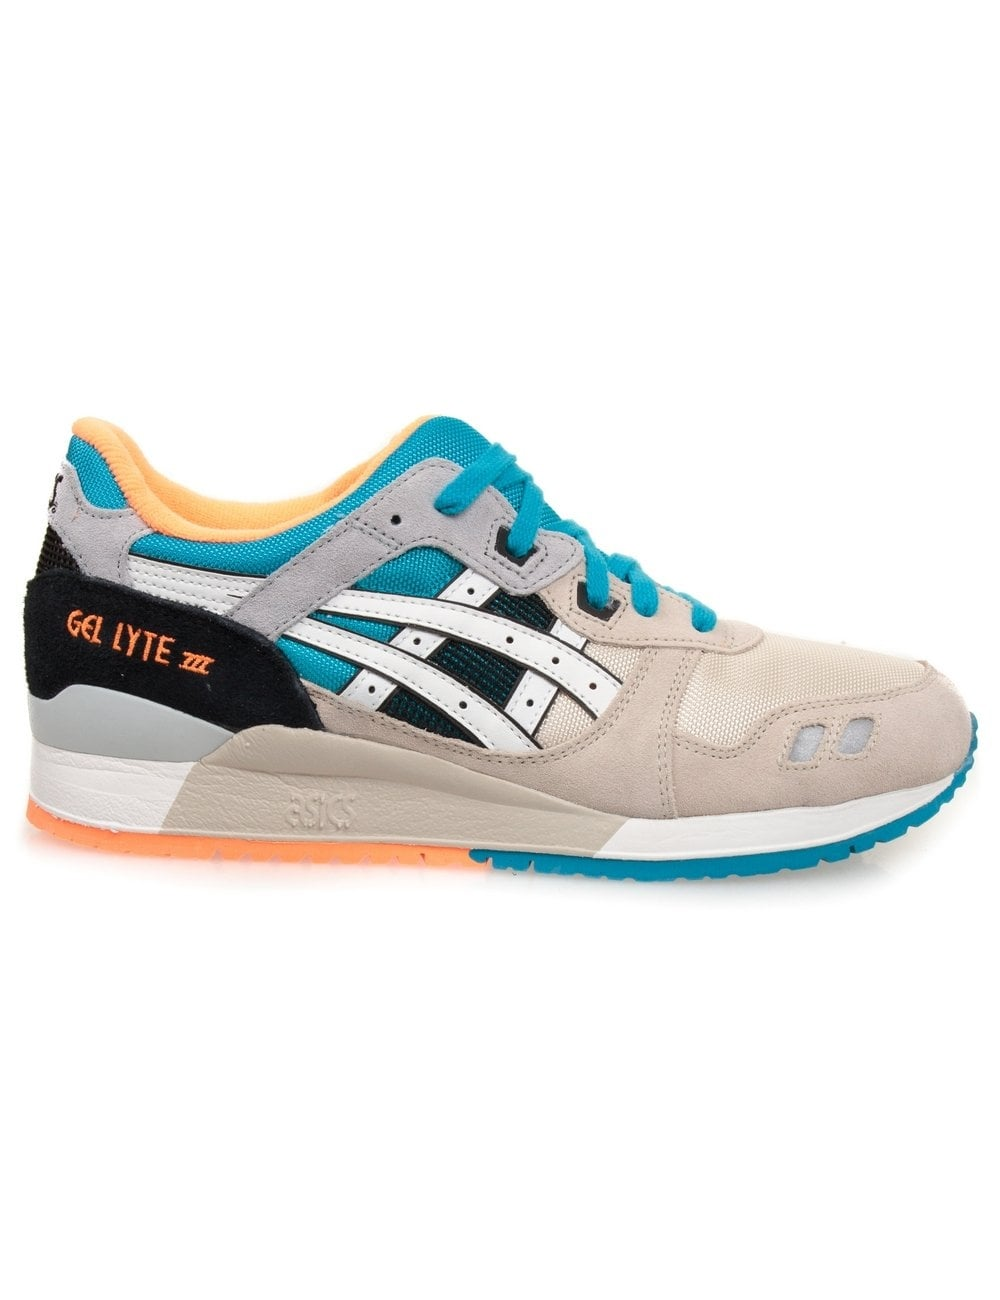 asics gel lyte iii off white white asics from fat. Black Bedroom Furniture Sets. Home Design Ideas